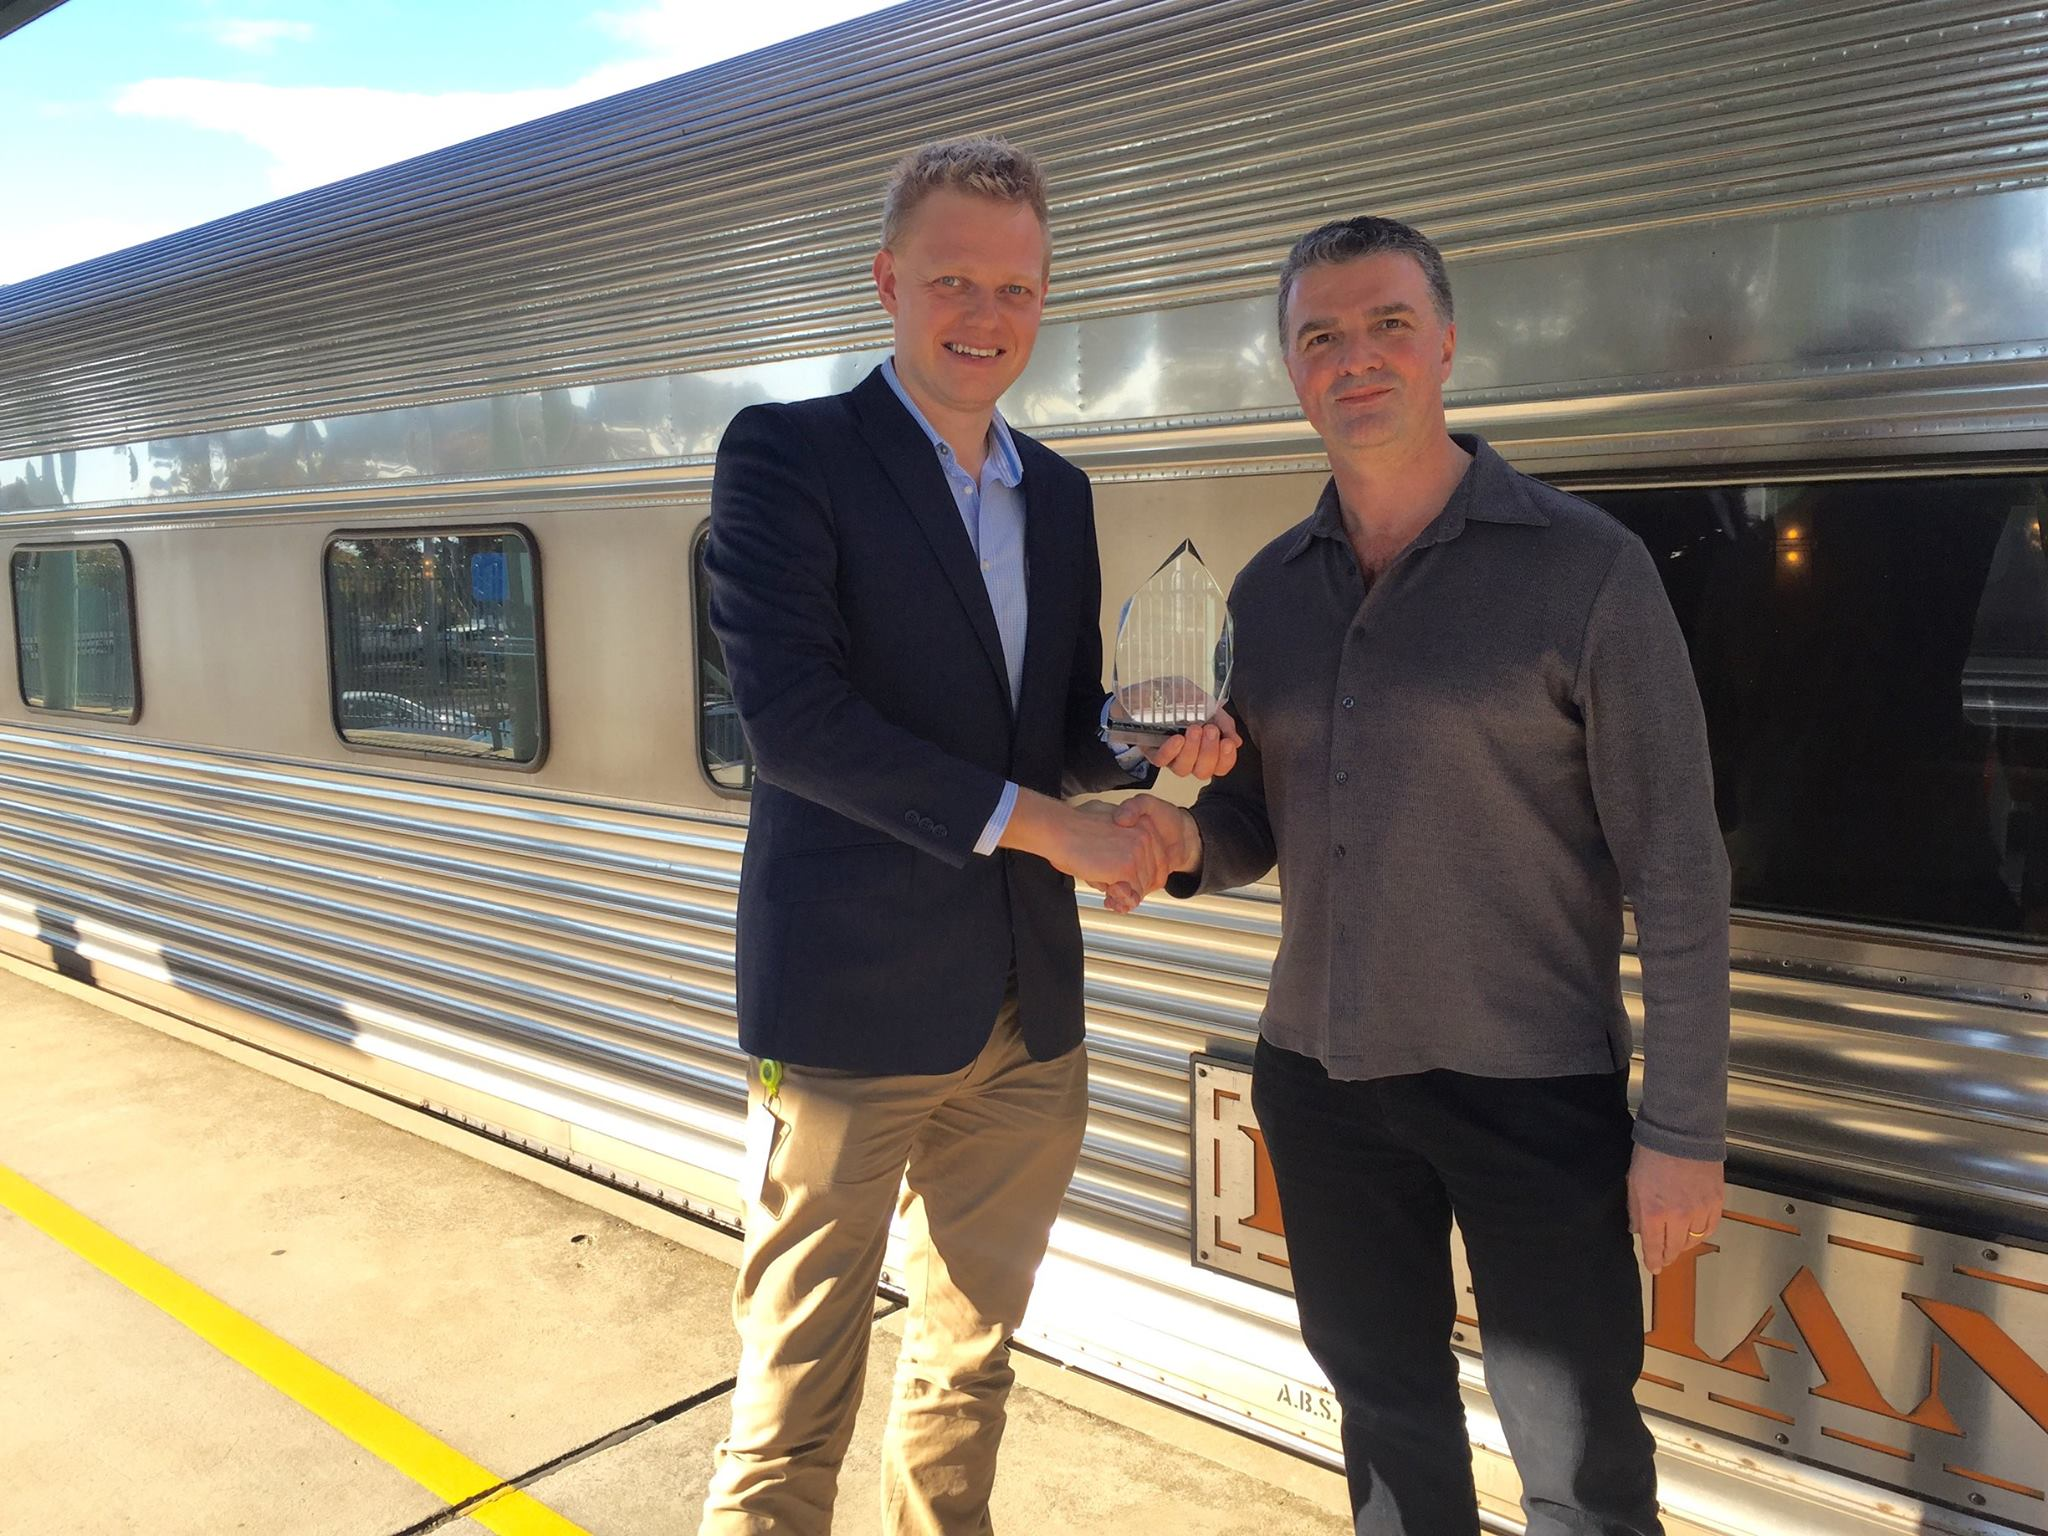 Charimans Club award for Great Trains